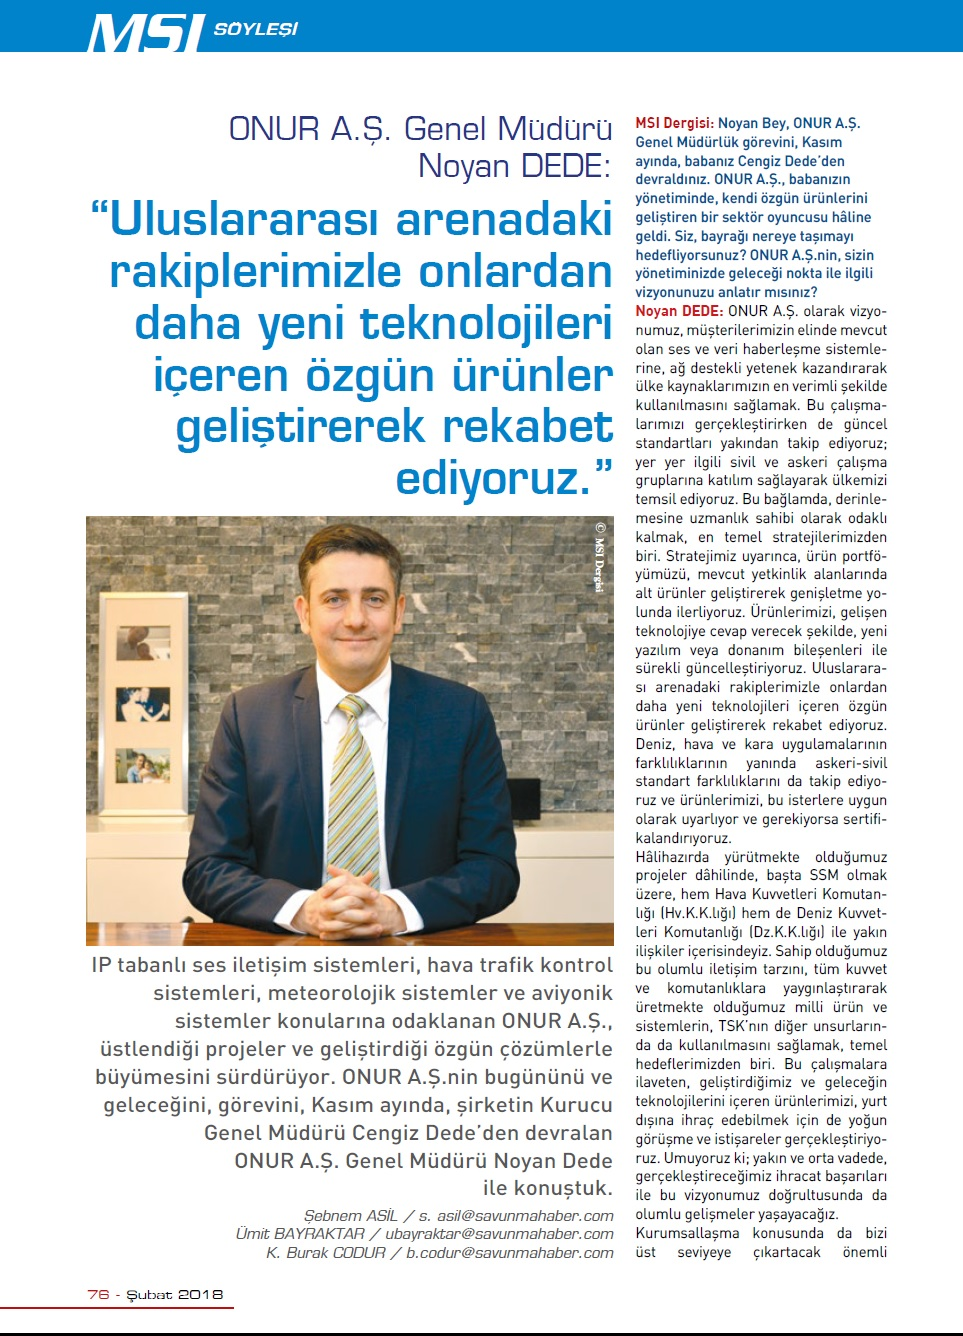 MSI Turkish Defence Review - February Interview with Our General Manager